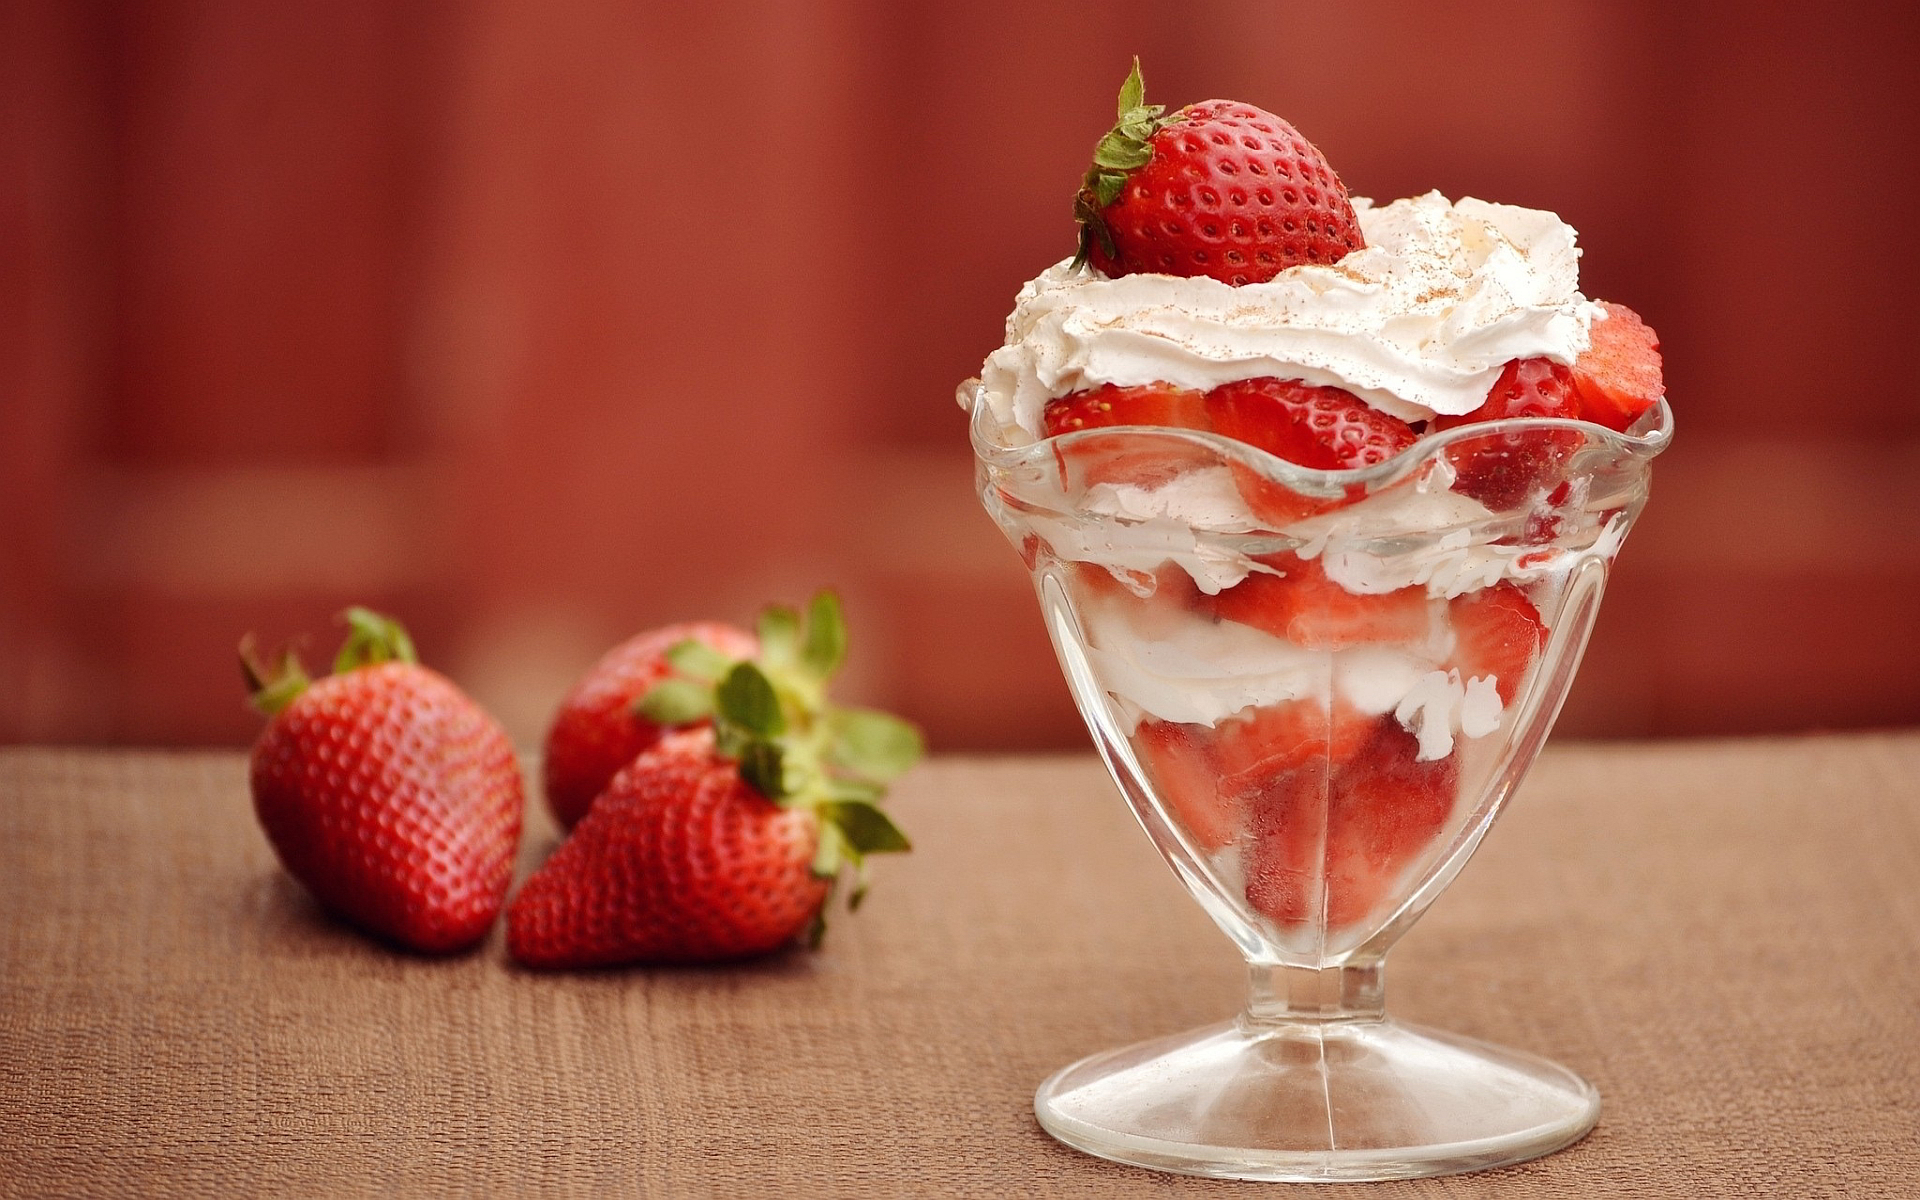 28 Lovely Hd Ice Cream Wallpapers: July 7 Is Strawberry Sundae Day